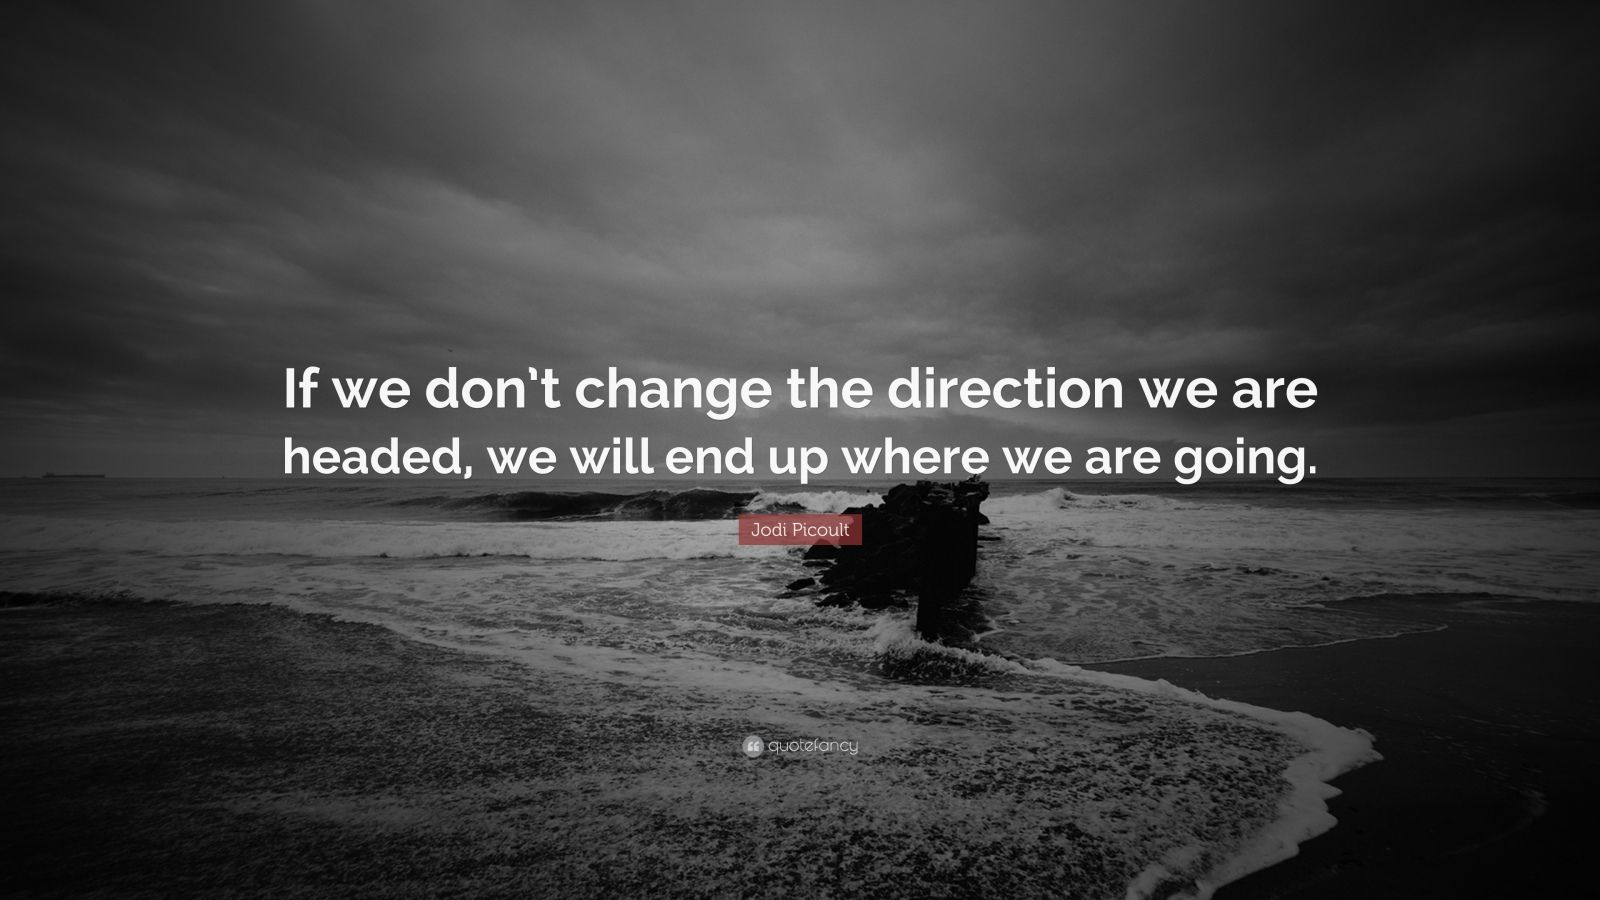 """Jodi Picoult Quote: """"If we don't change the direction we are headed, we will end up where we are going."""""""